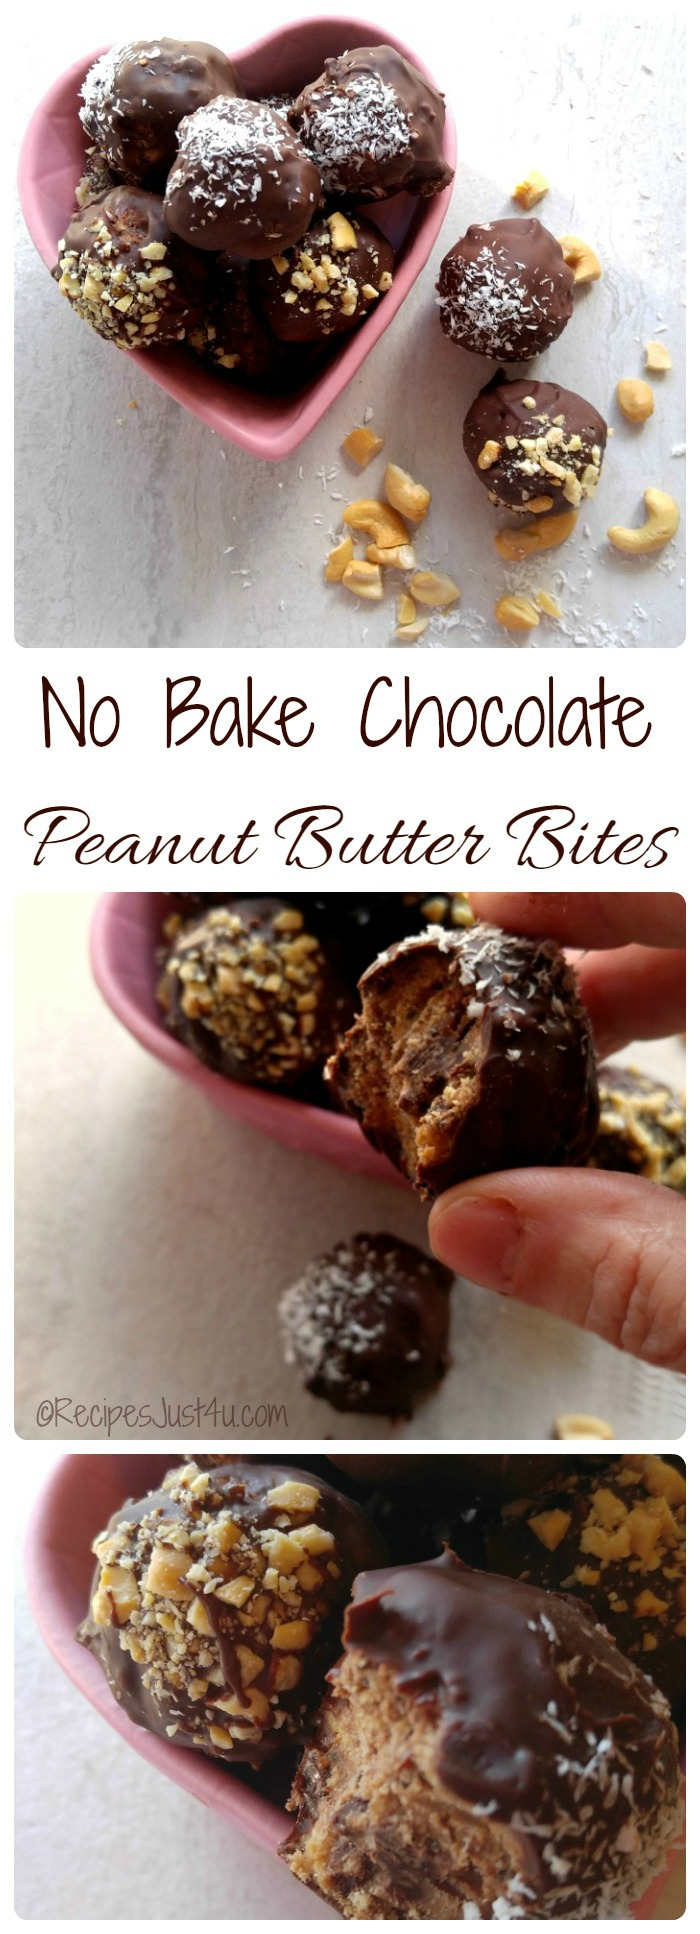 These No Bake Chocolate Peanut Butter Bites are a yummy treat that also packs a nutritious punch.